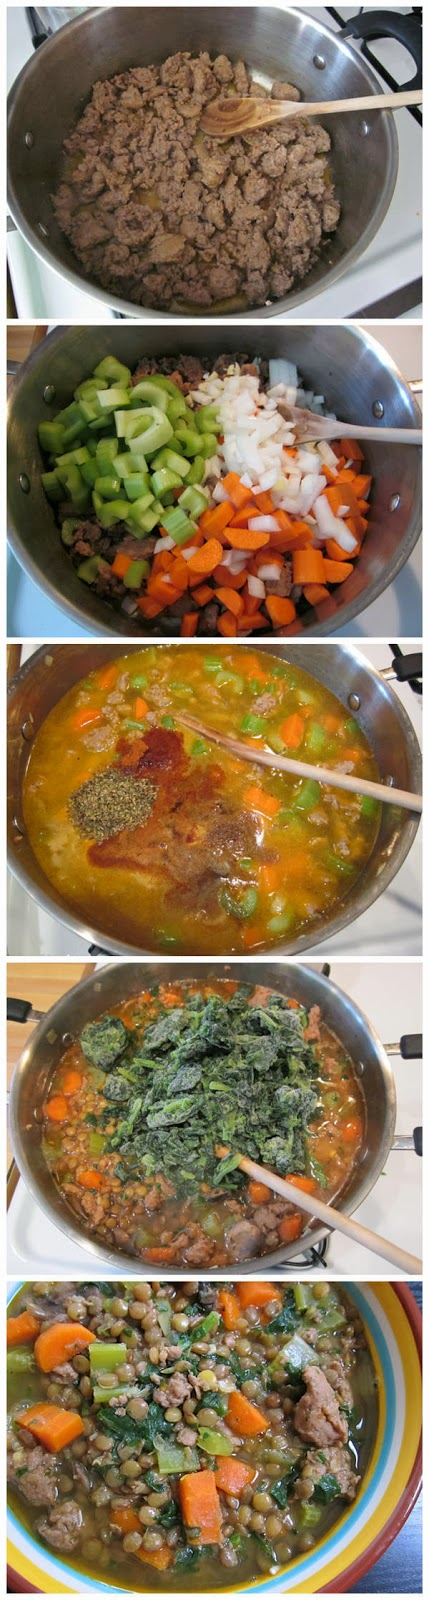 lentil-and-sausage-stew